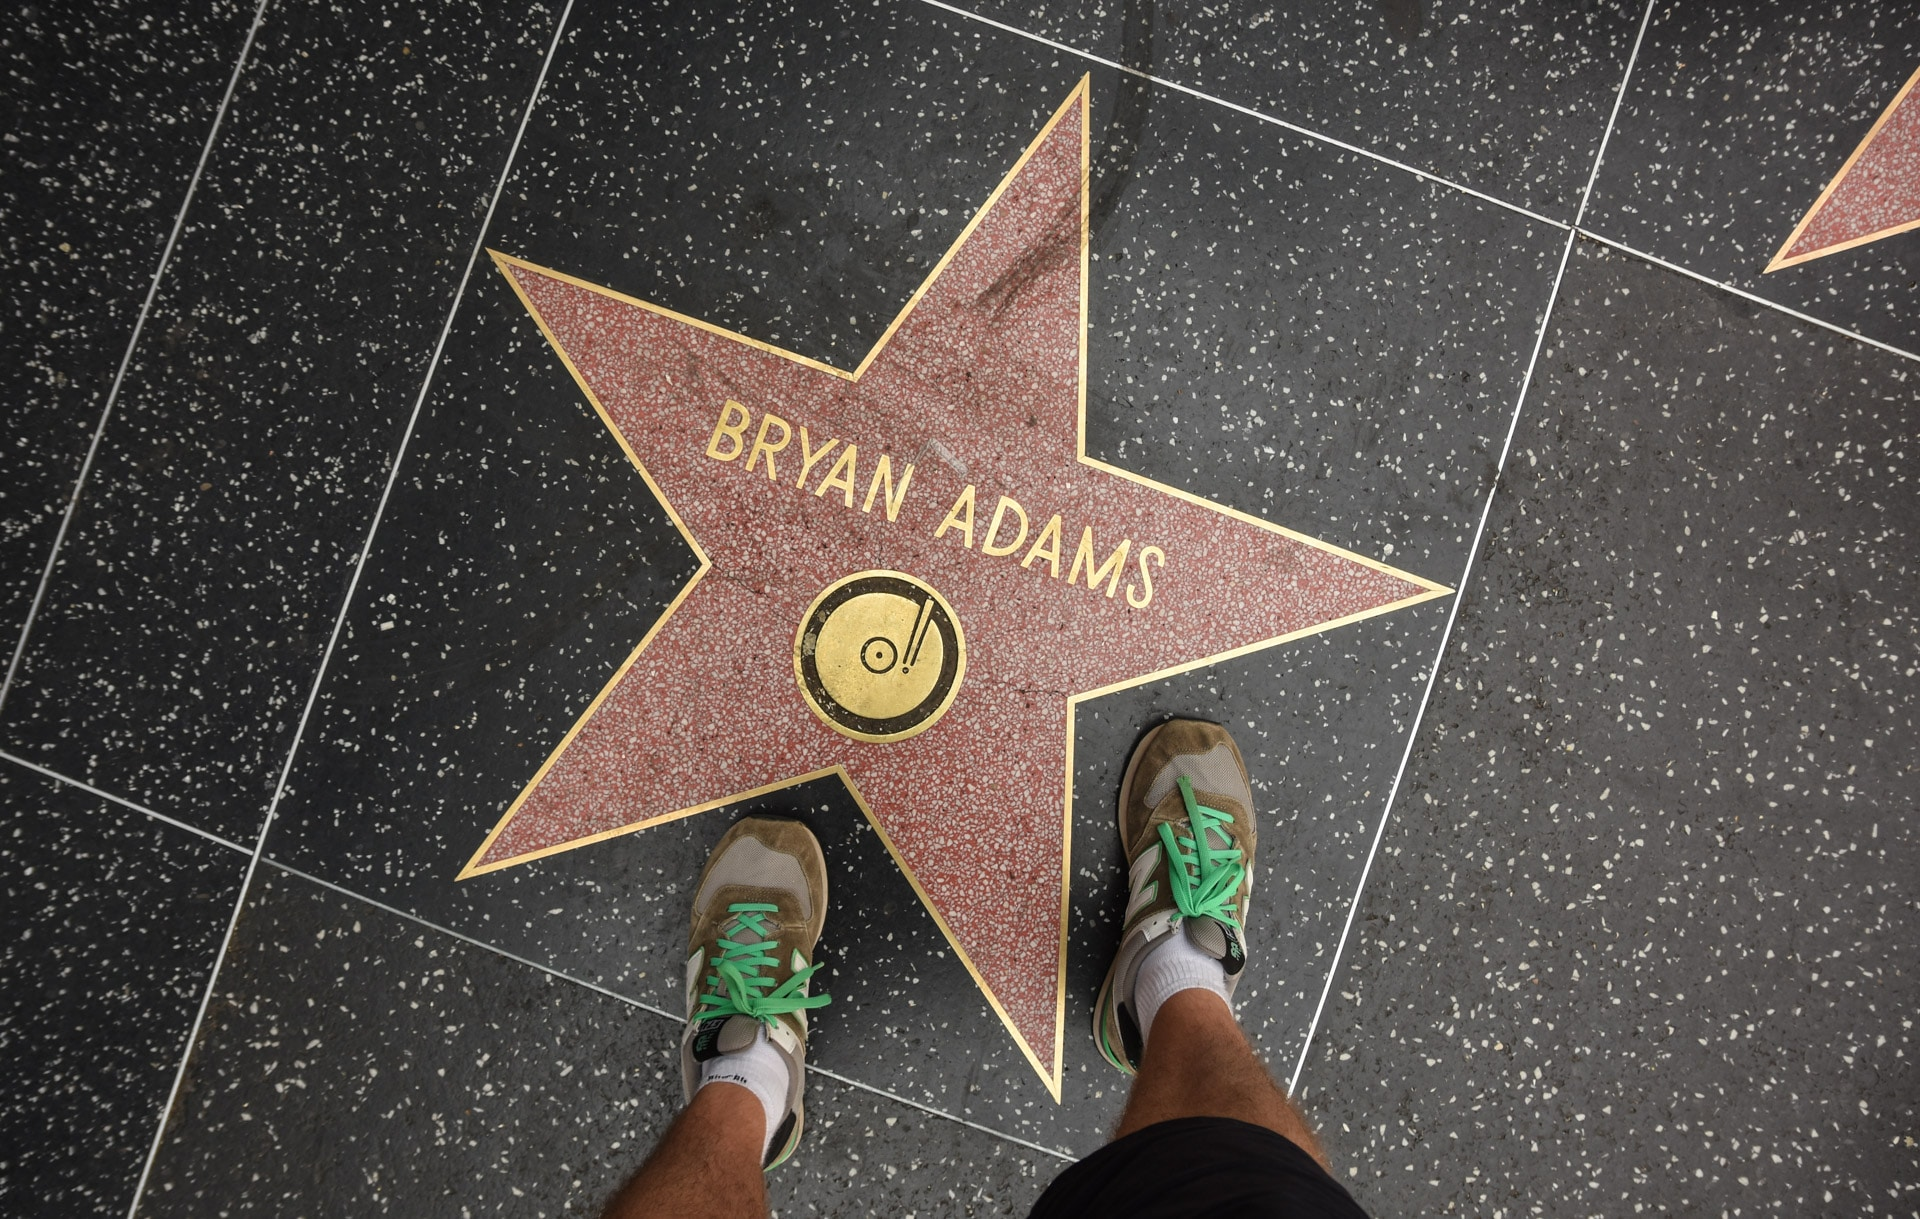 Bryan Adams w Hollywood